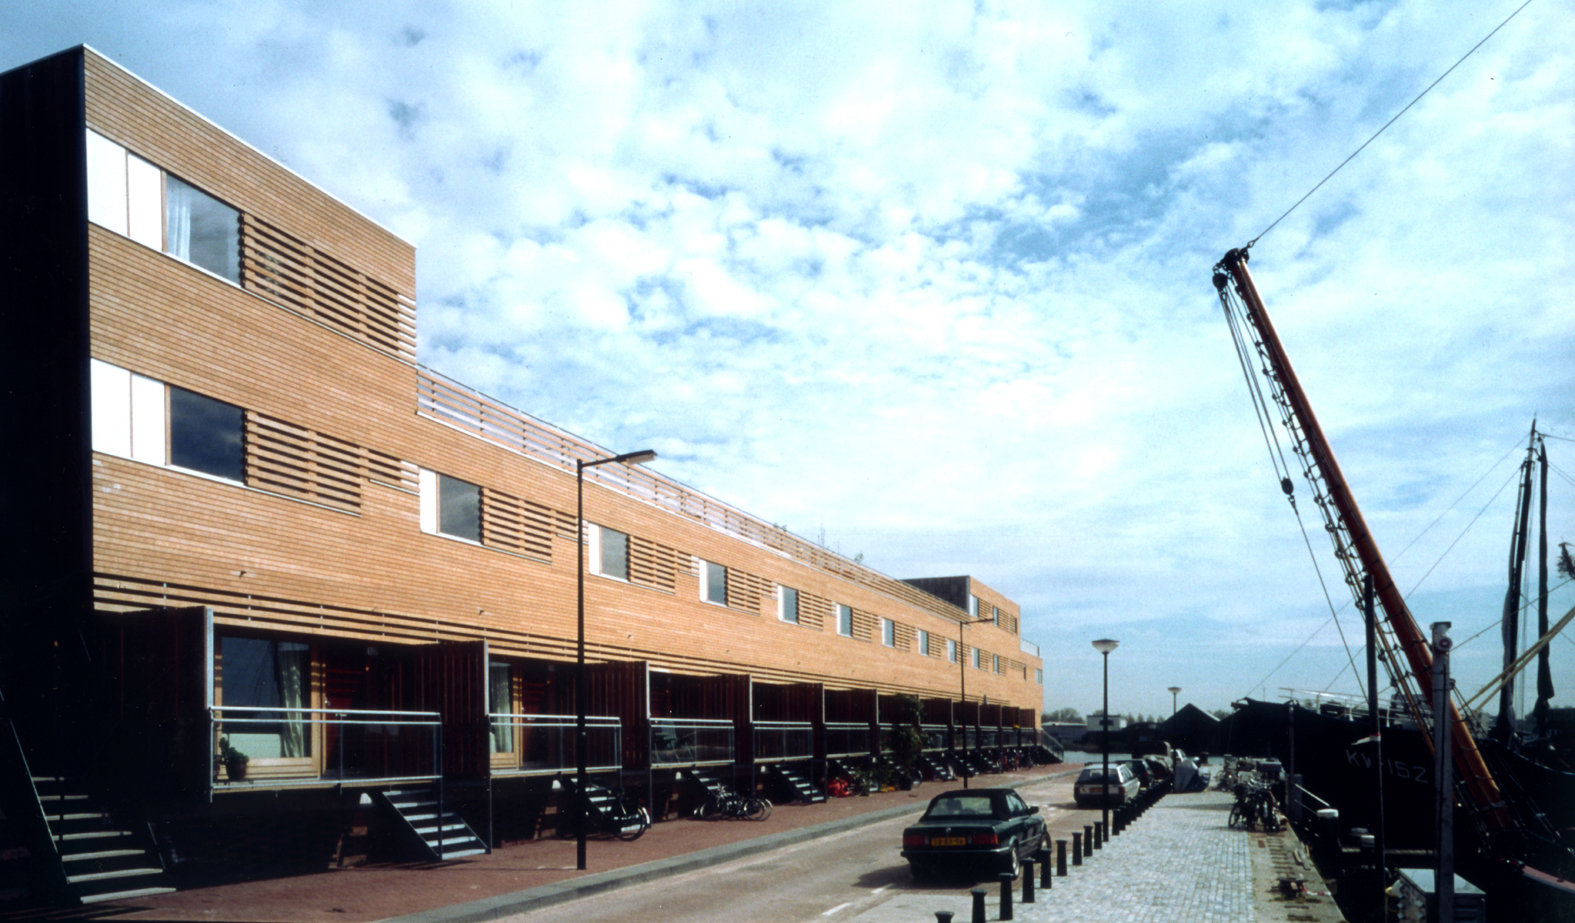 26 Housing units in Amsterdam, The Netherlands